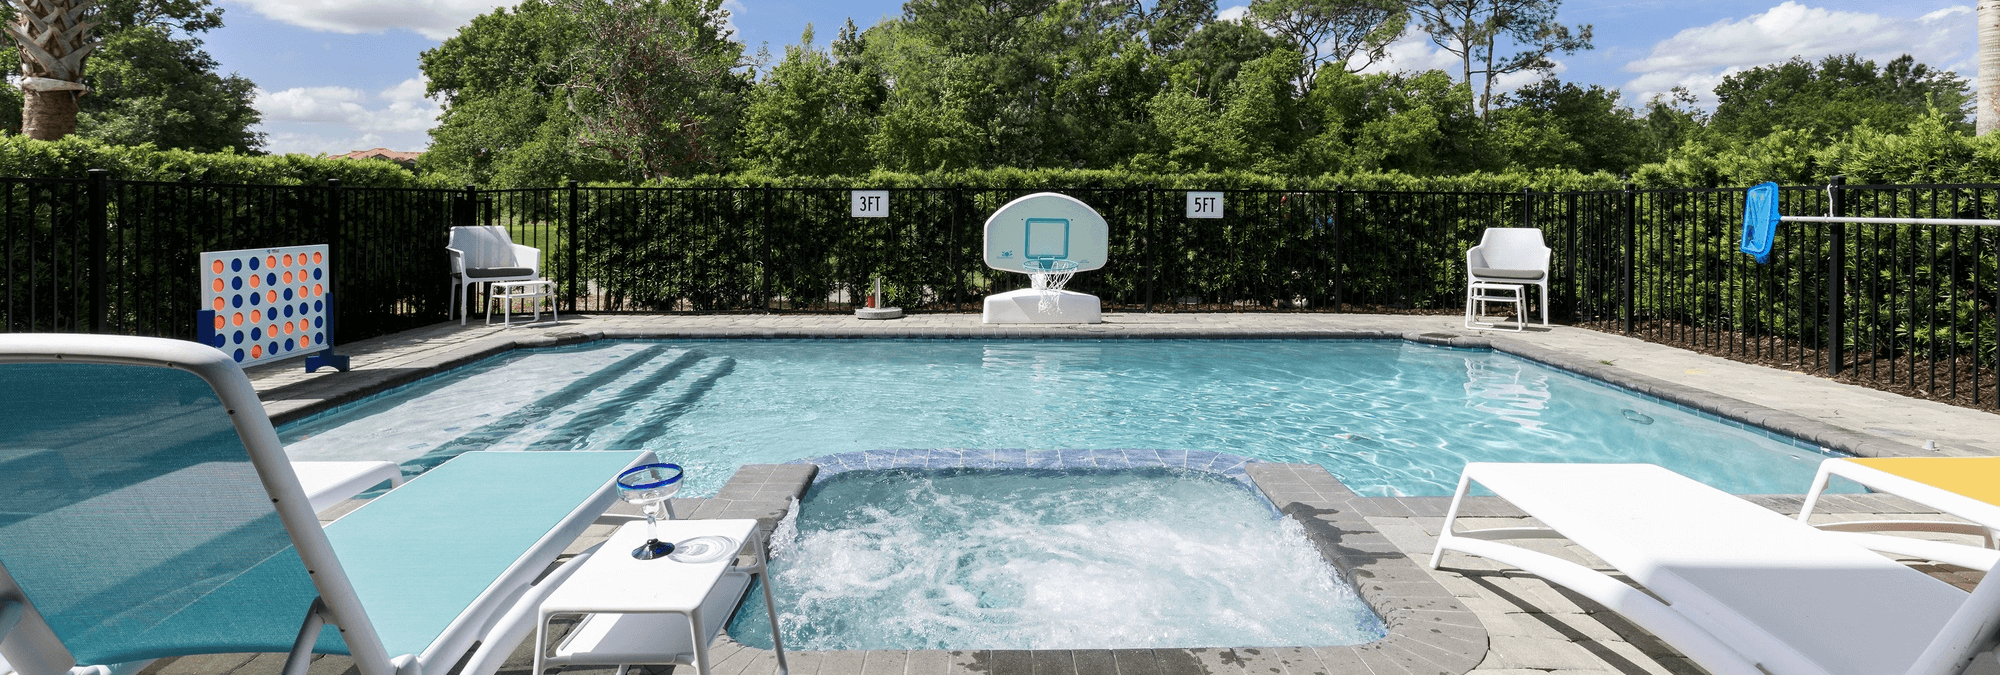 Orlando vacation rentals with pool